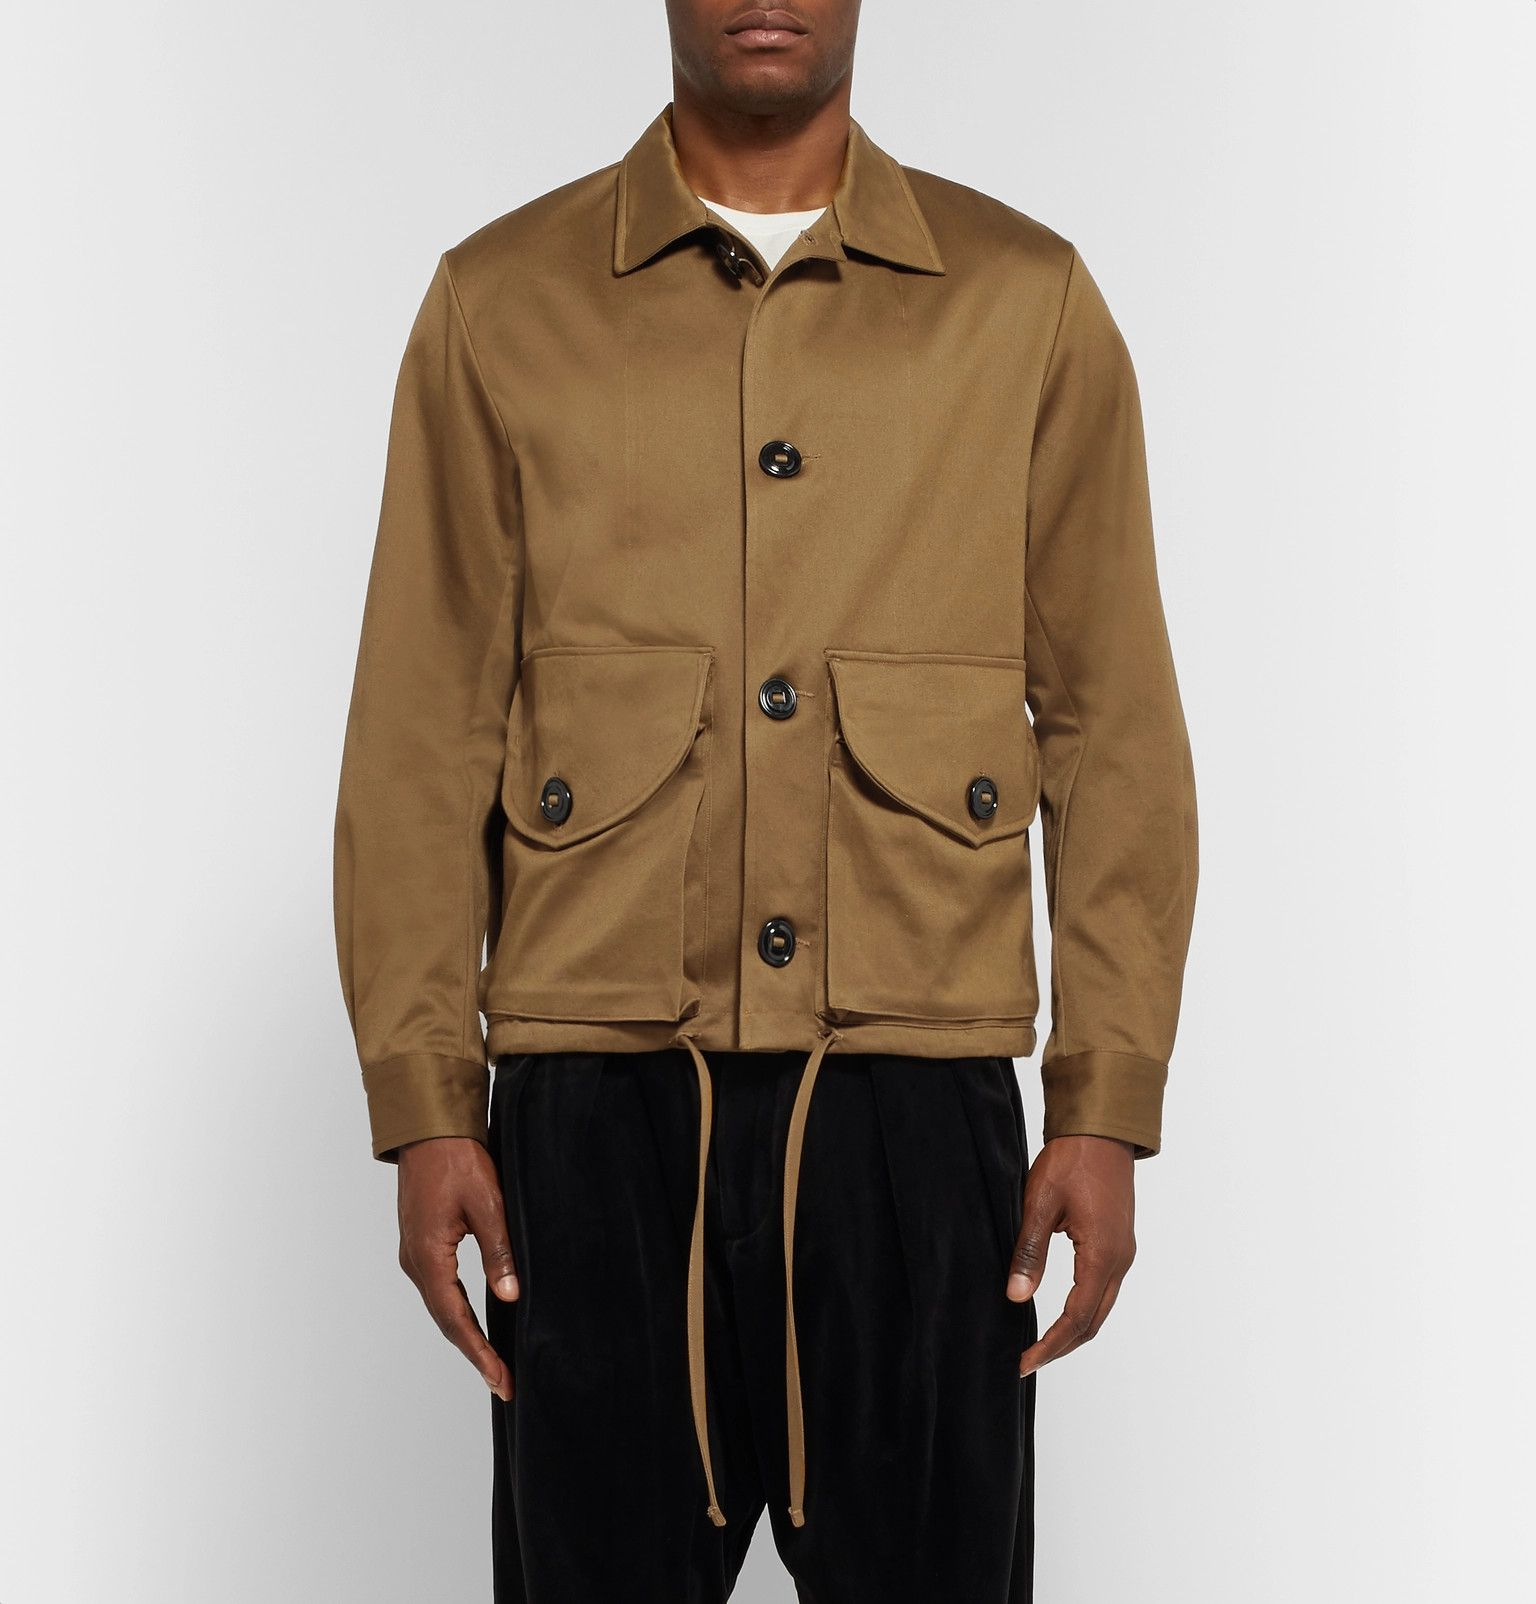 Monitaly - Military Service Type A Cotton Jacket | ss20